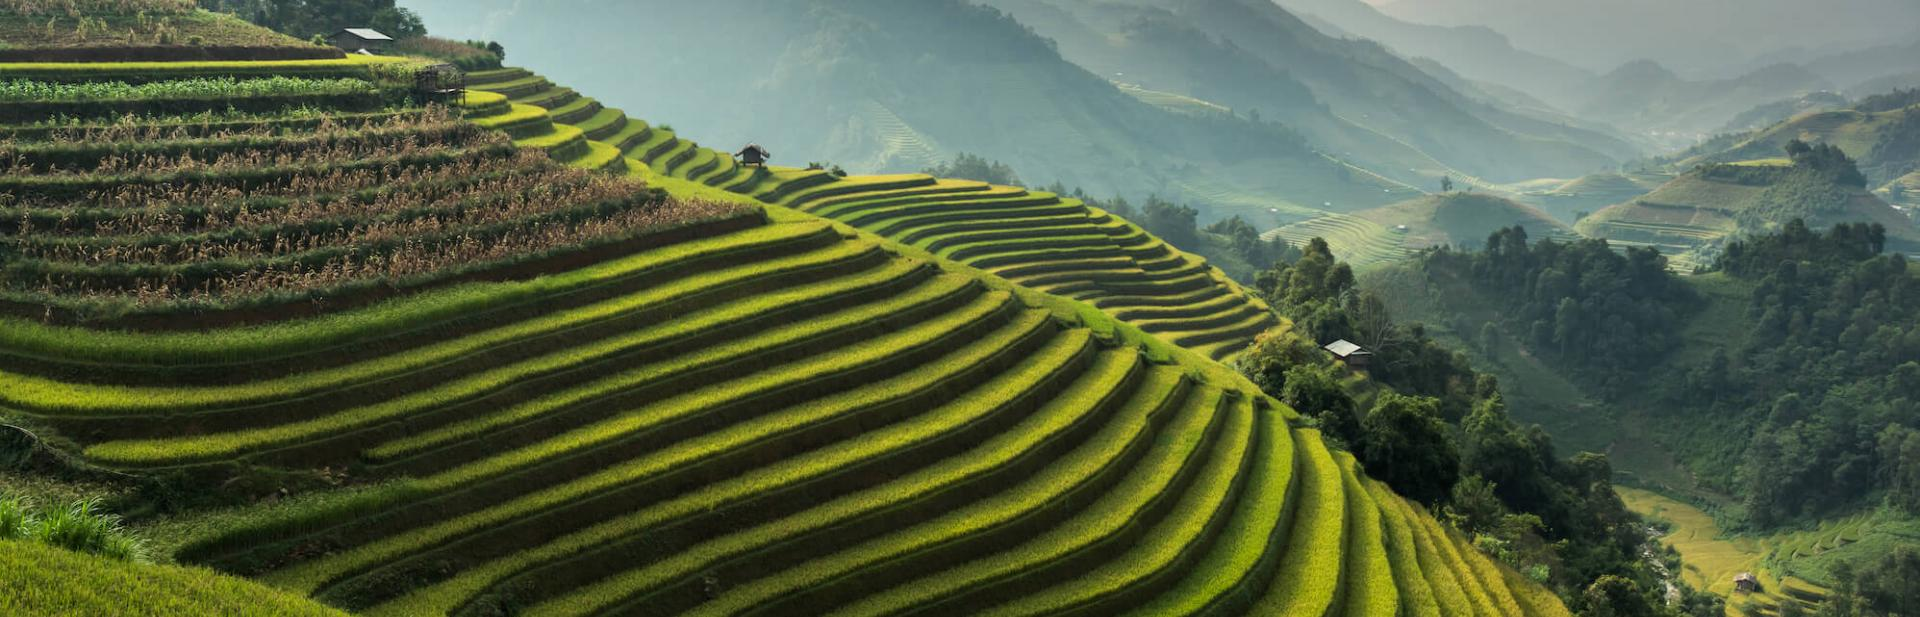 View of a stepped rice paddy with mountains in the background.